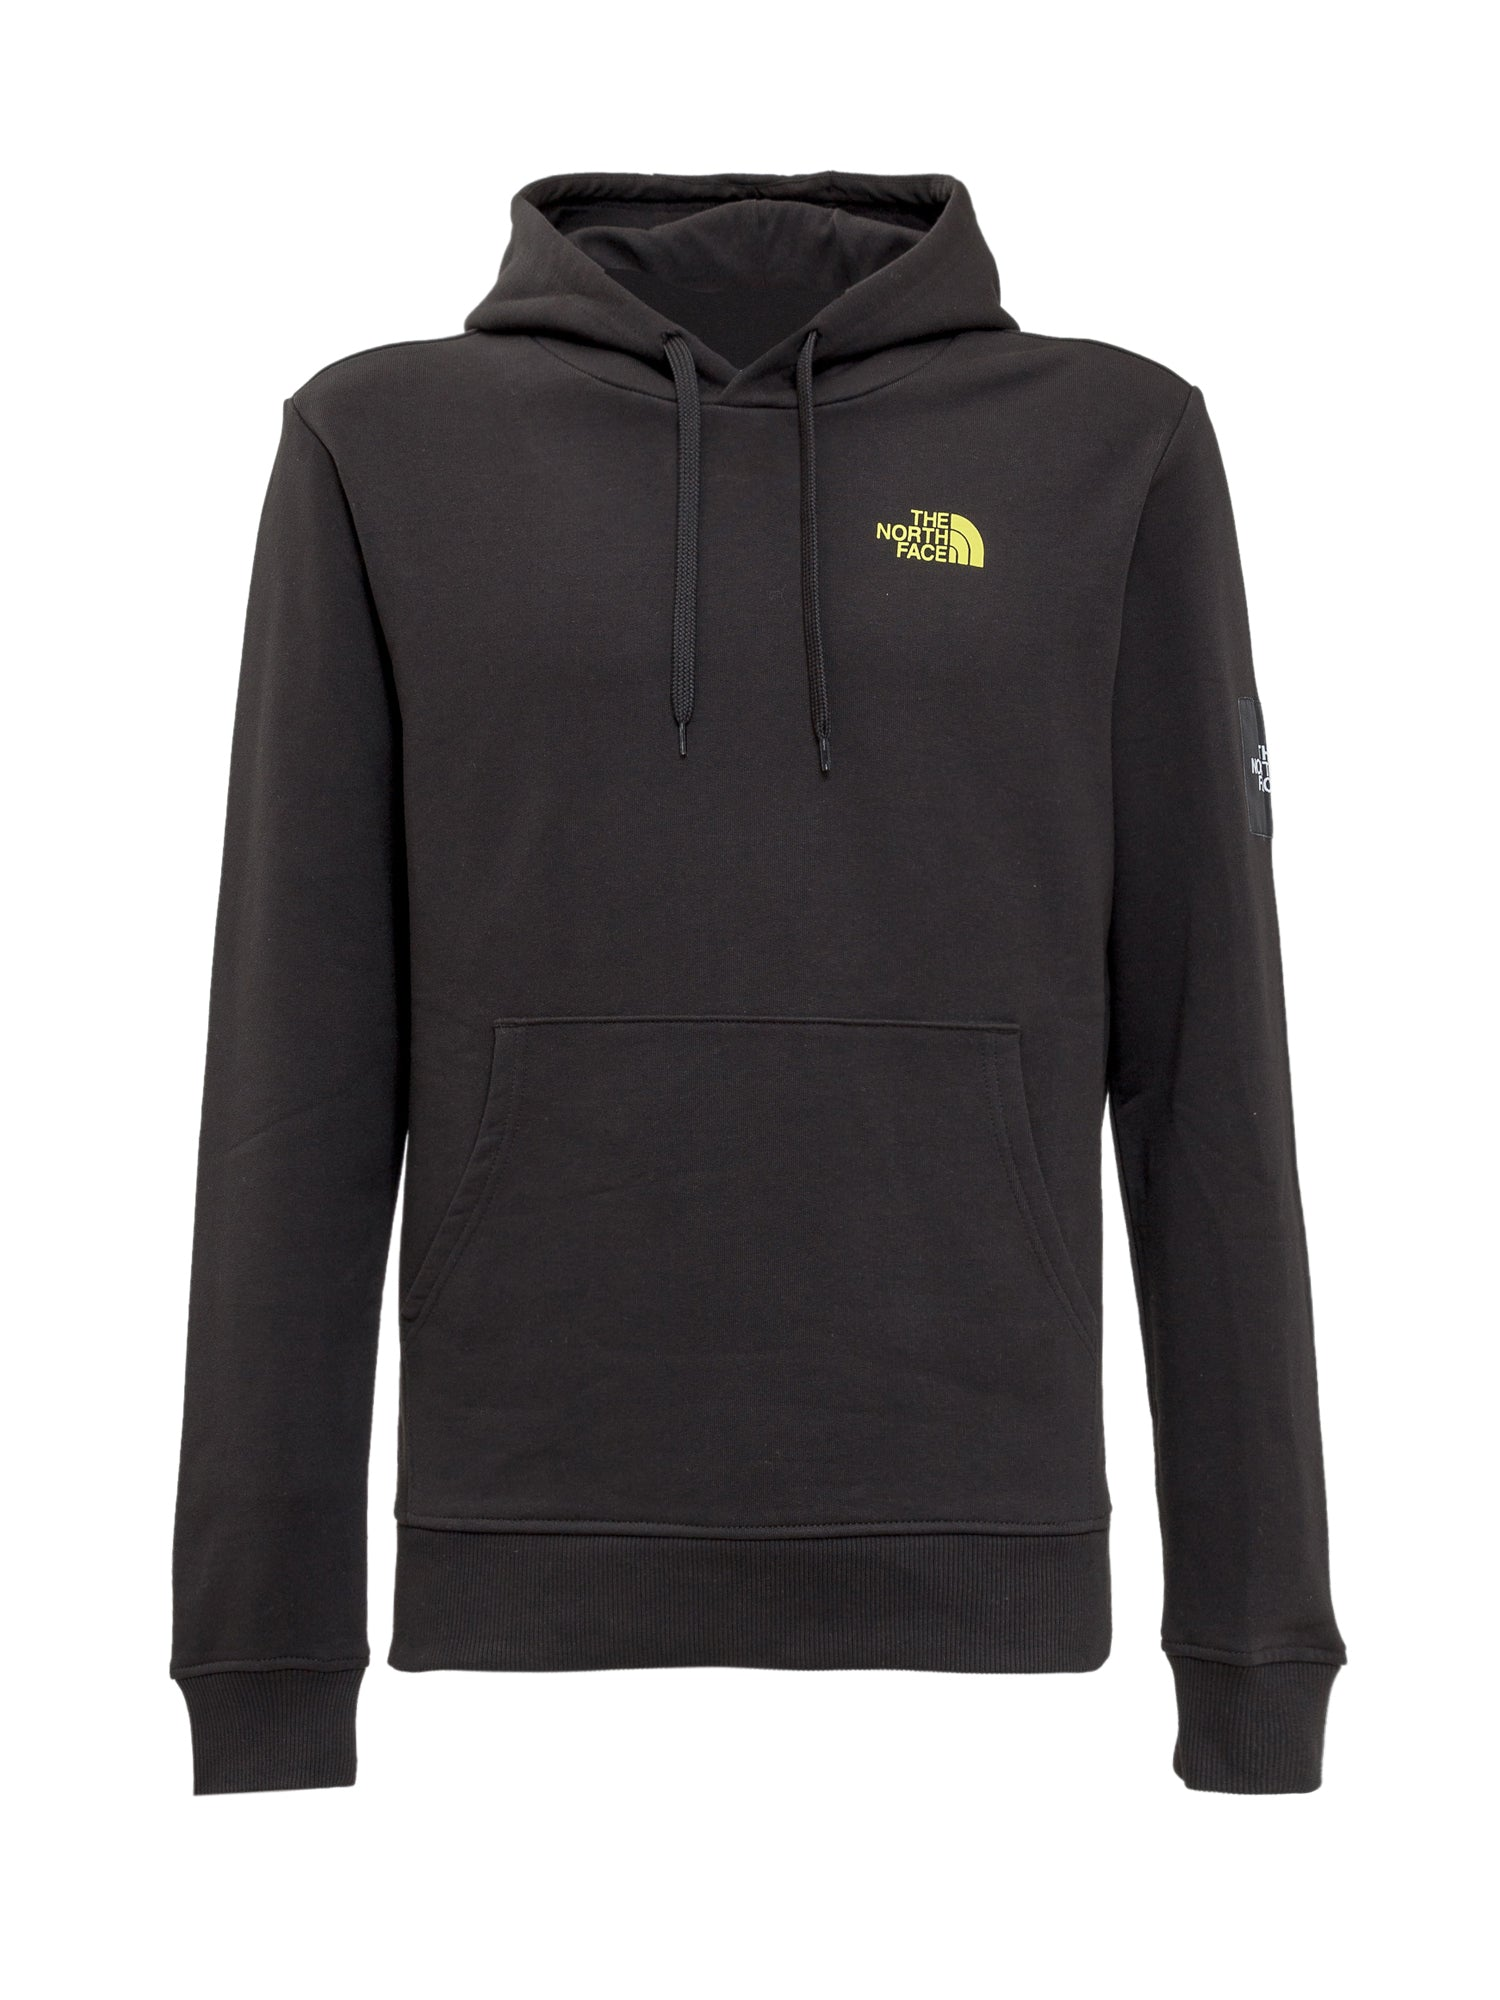 The North Face Cottons THE NORTH FACE LOGO PRINTED HOODIE